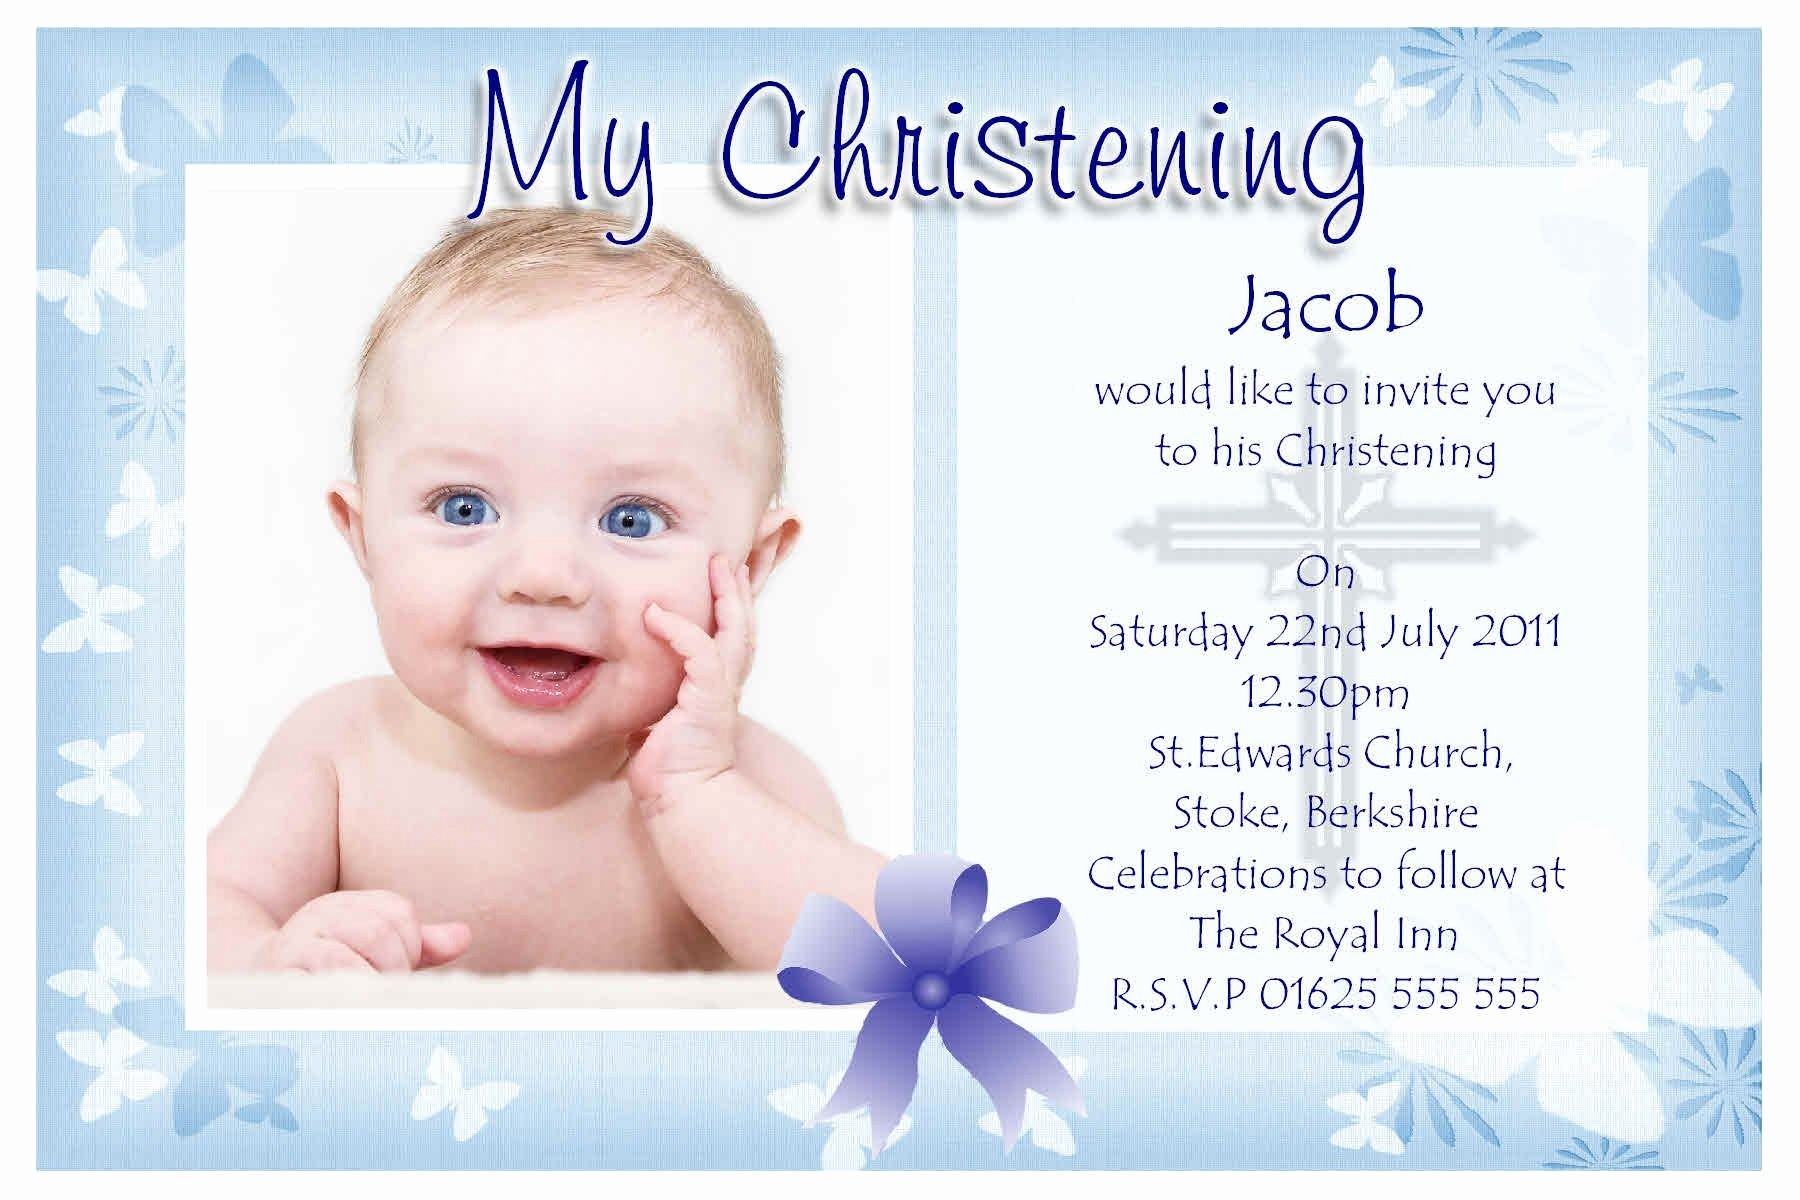 1st birthday invitation quotes for baby boy ; invitation-wordings-on-first-birthday-fresh-baby-boy-first-birthday-invitation-quotes-fresh-template-simple